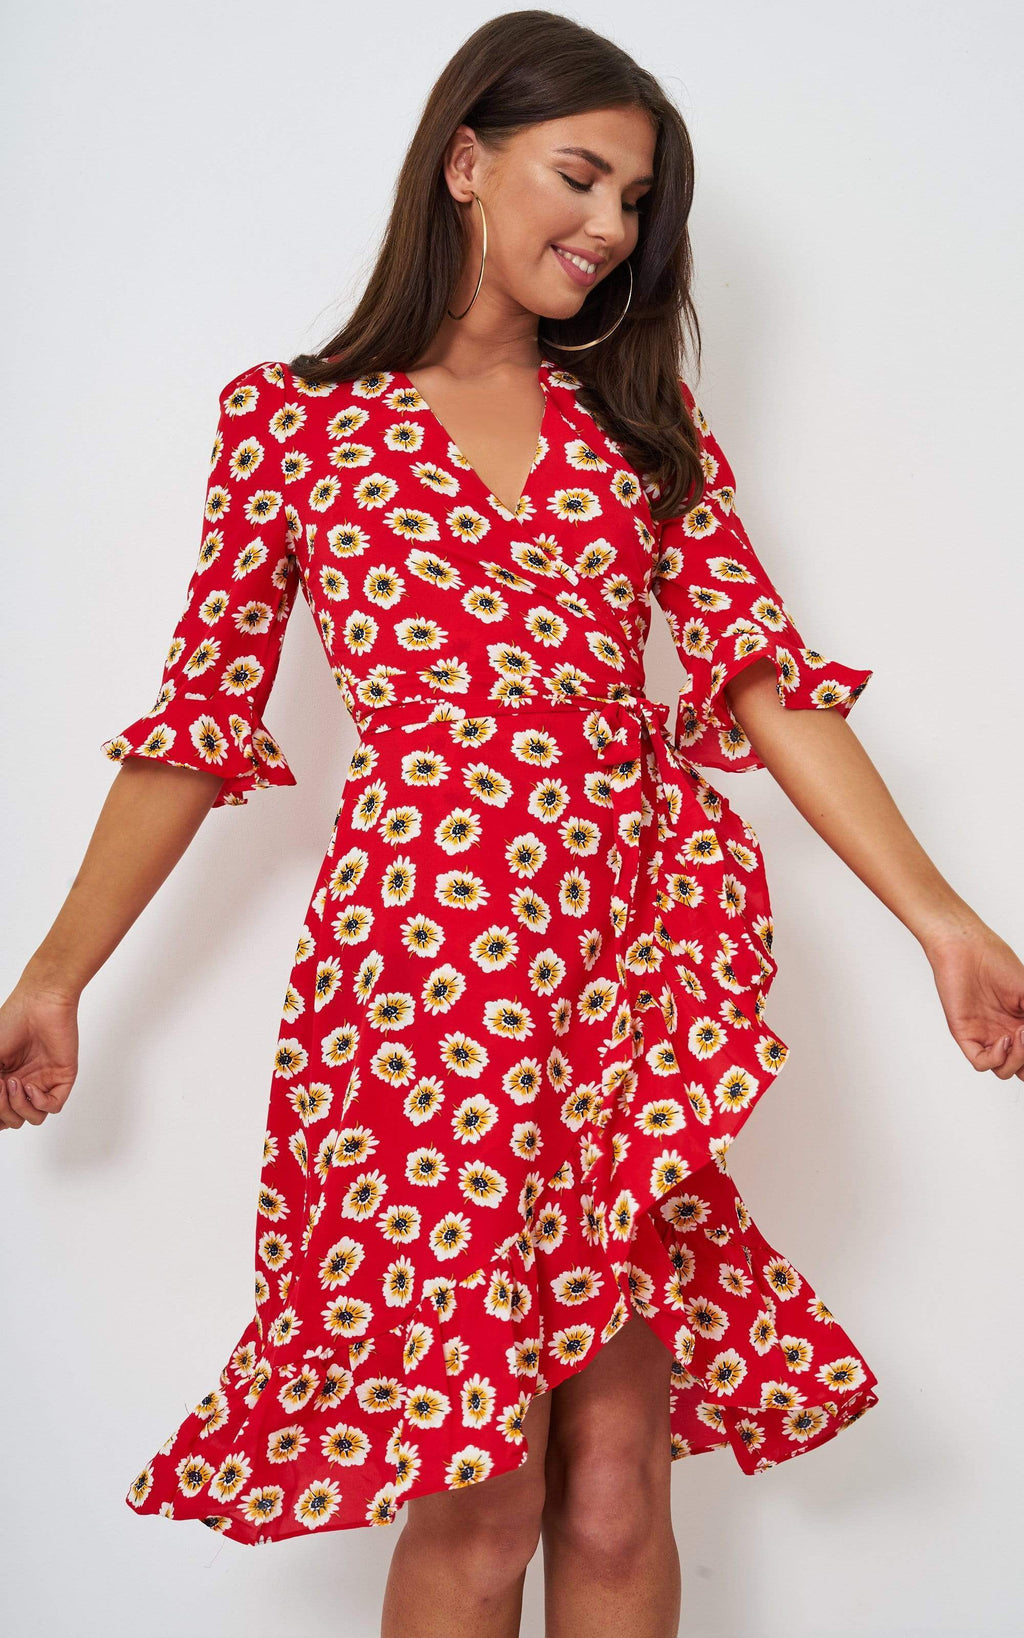 Aerin Red Floral Wrap Dress - love frontrow